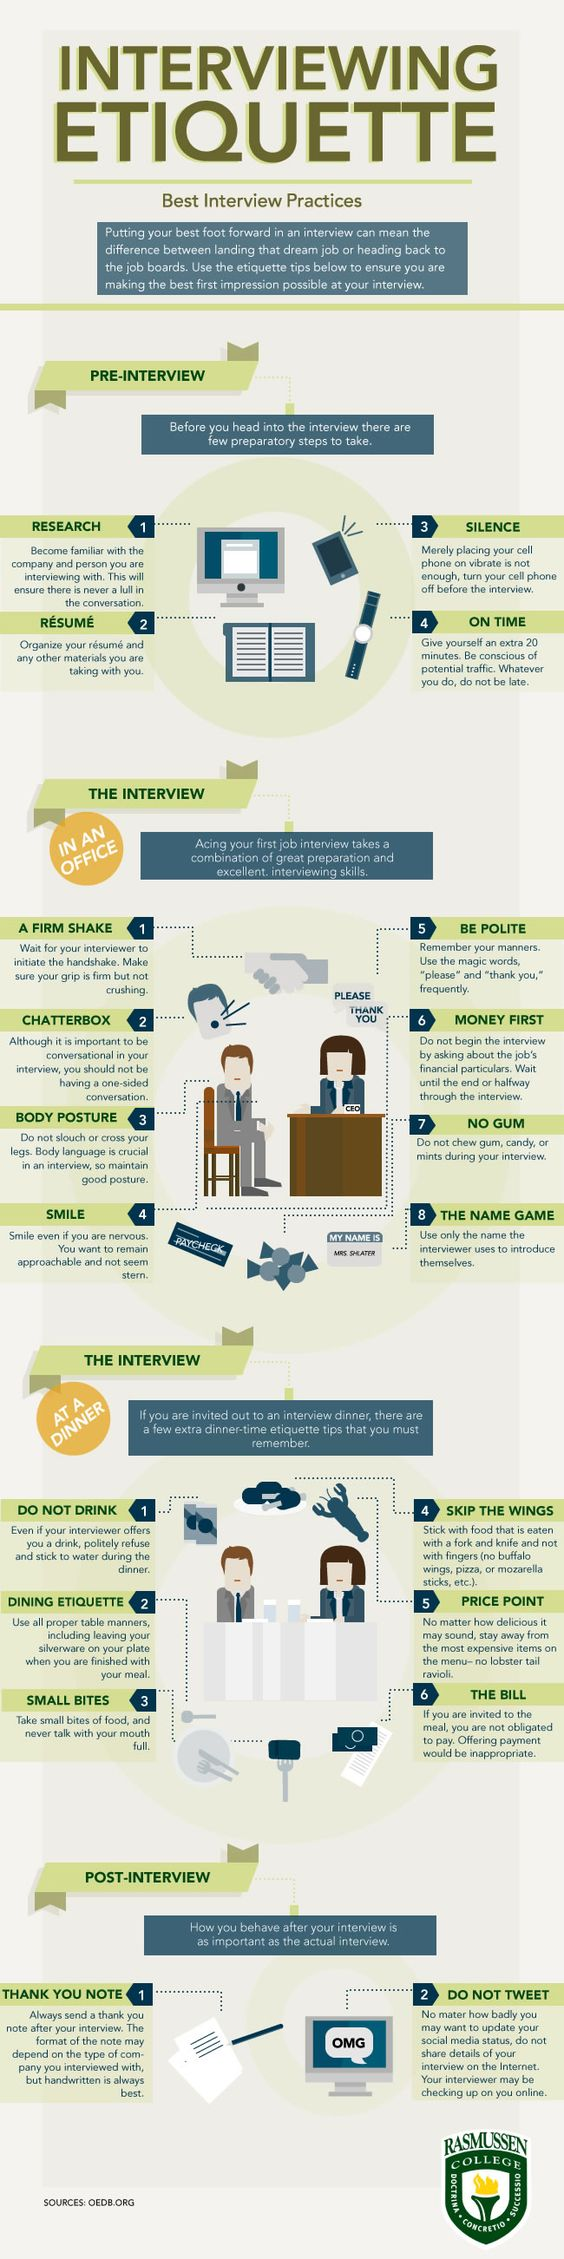 a guide to good job interview etiquette tips for interview i picked this one because it tells you how to use these etiquette tips for interviews to ensure you are making the best impression possible to your